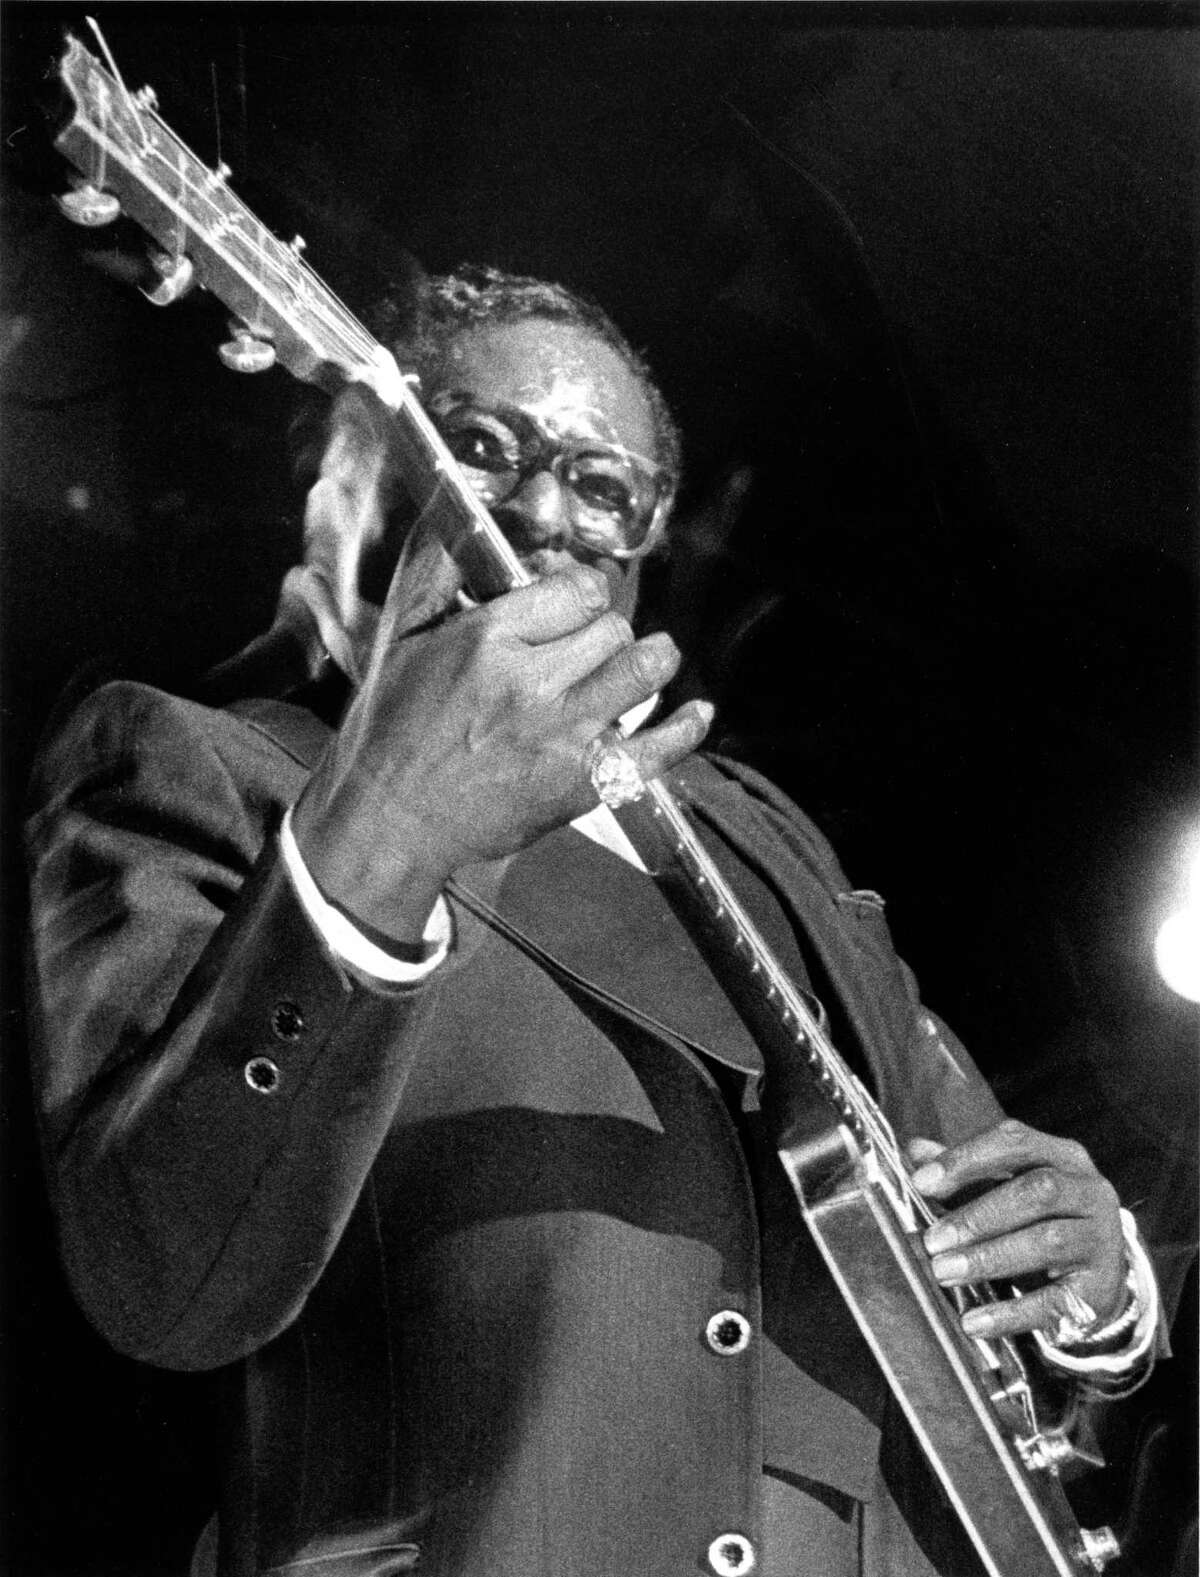 02/1984 - Bluesman Albert King, The Velvet Bulldozer, performs at Fitzgerald's with his Flying V guitar.